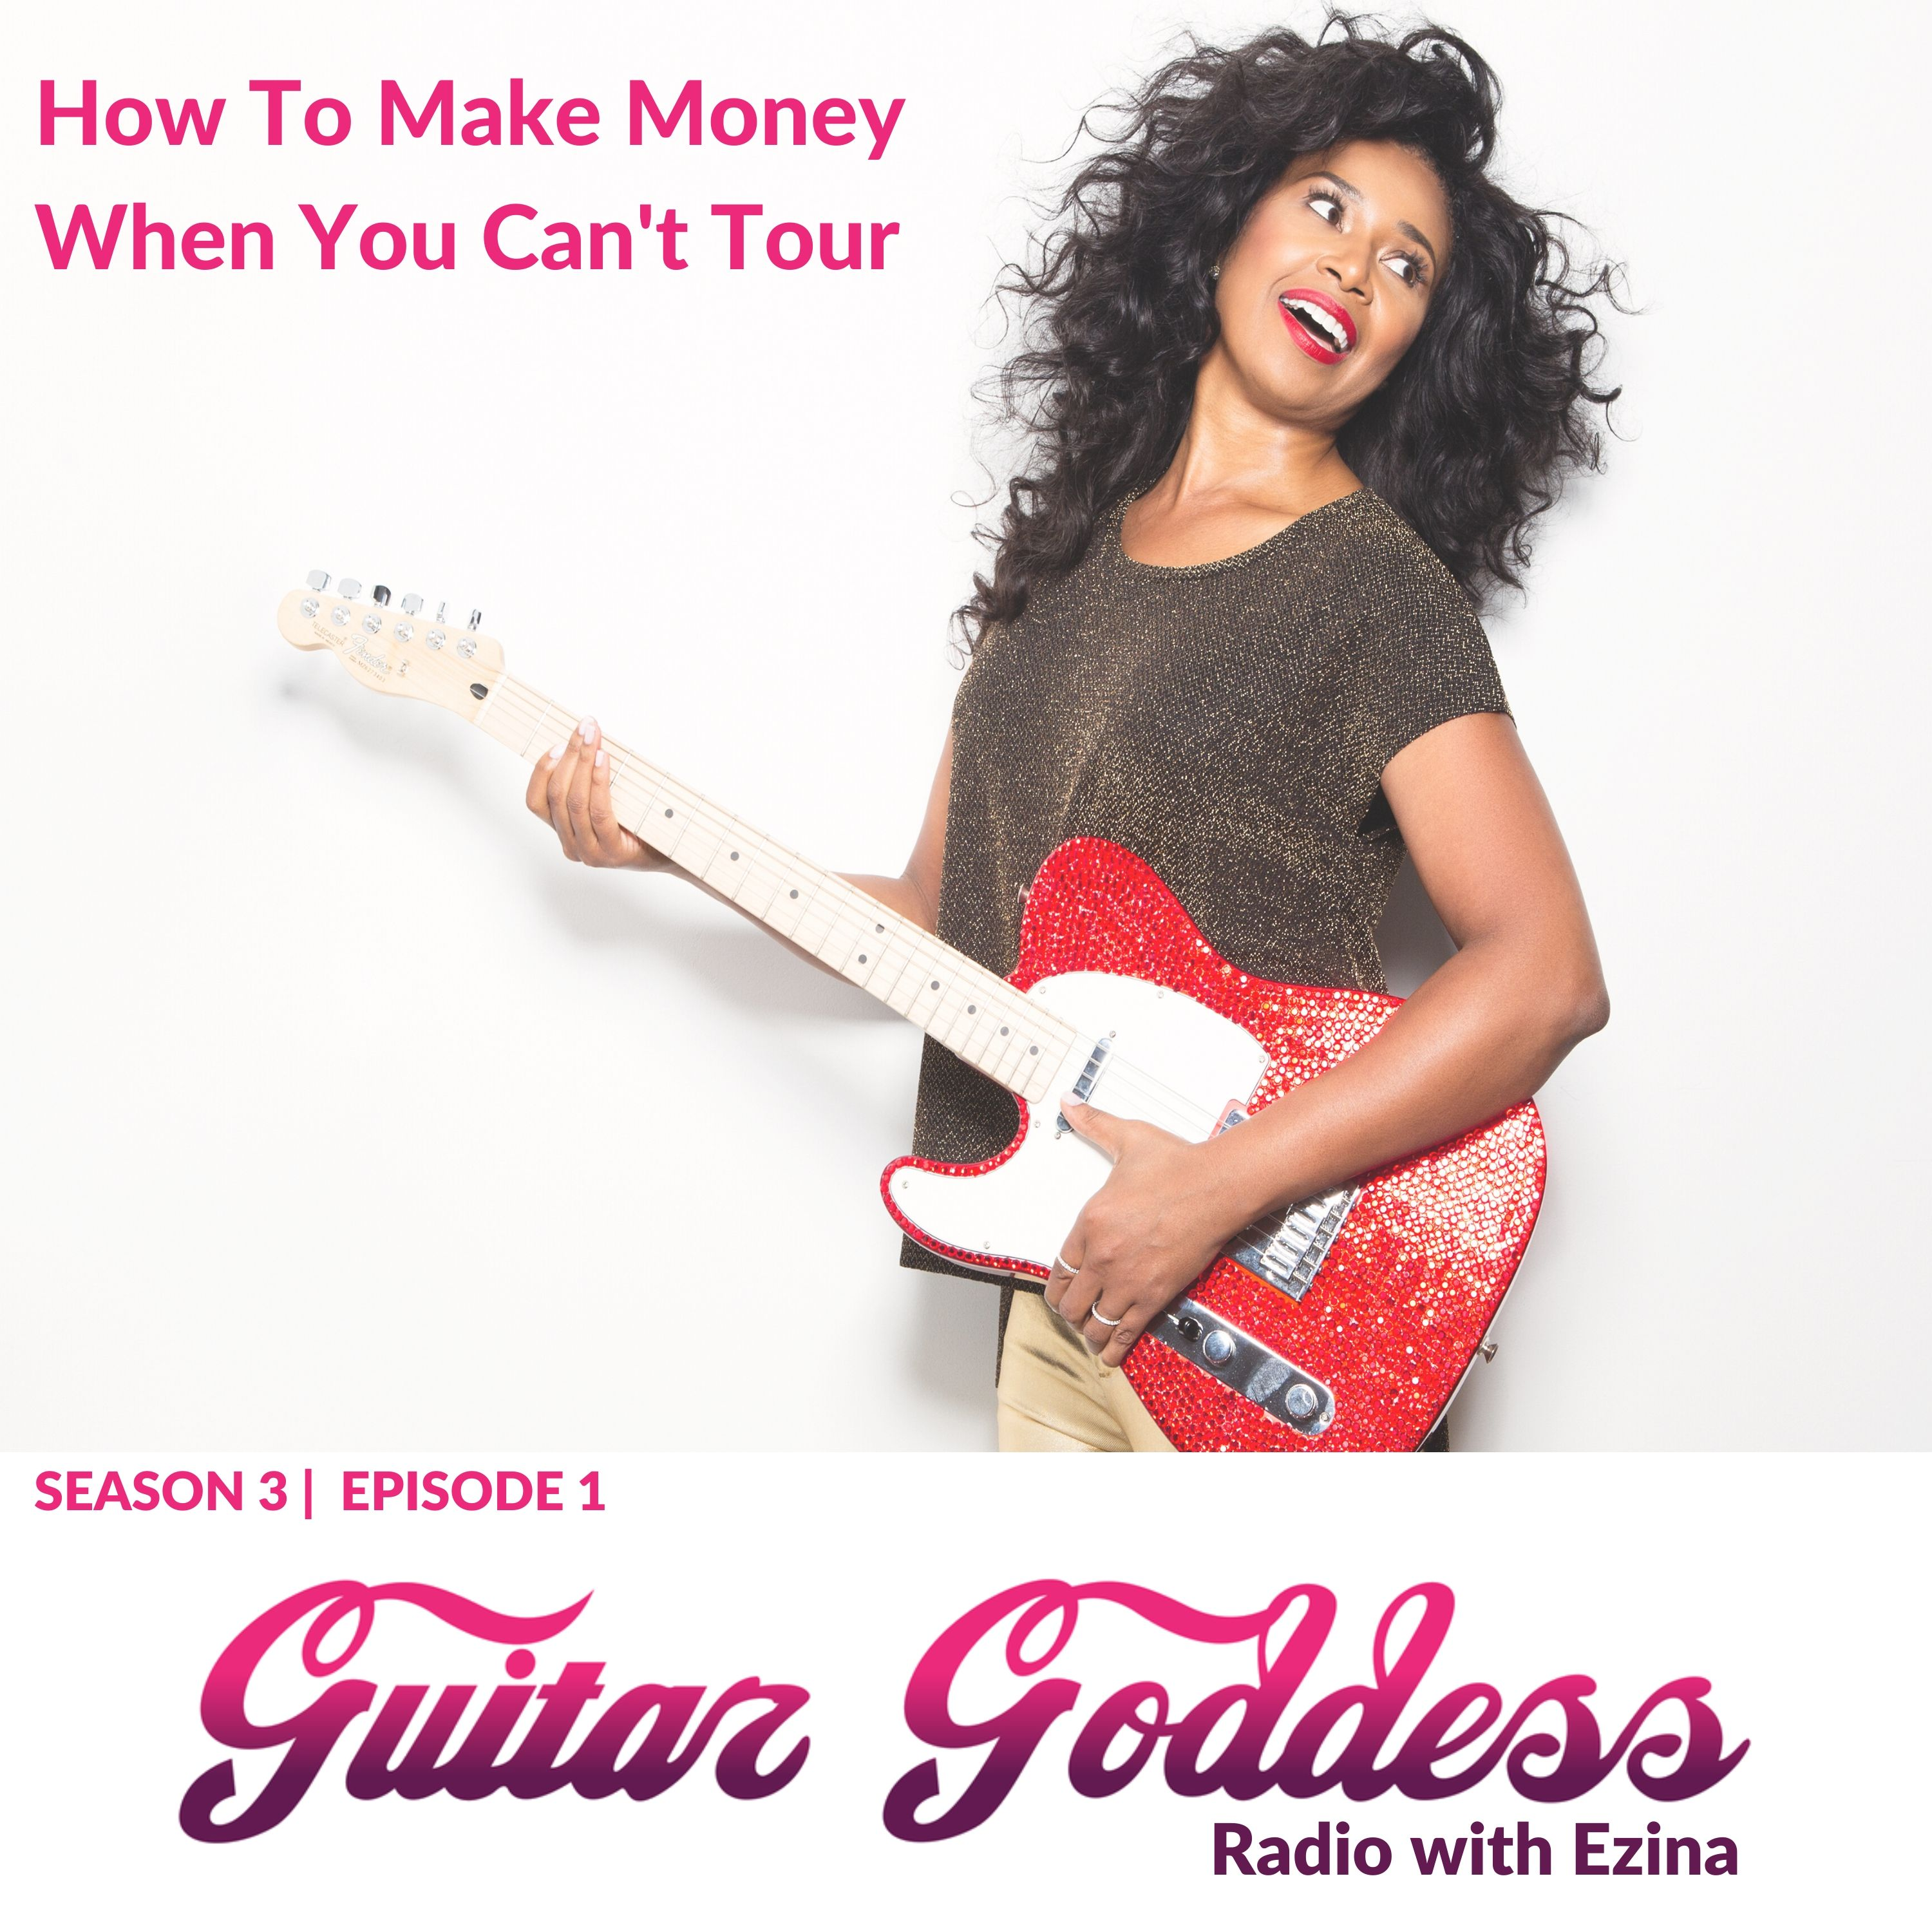 Artwork for How To Make Money When You Can't Tour